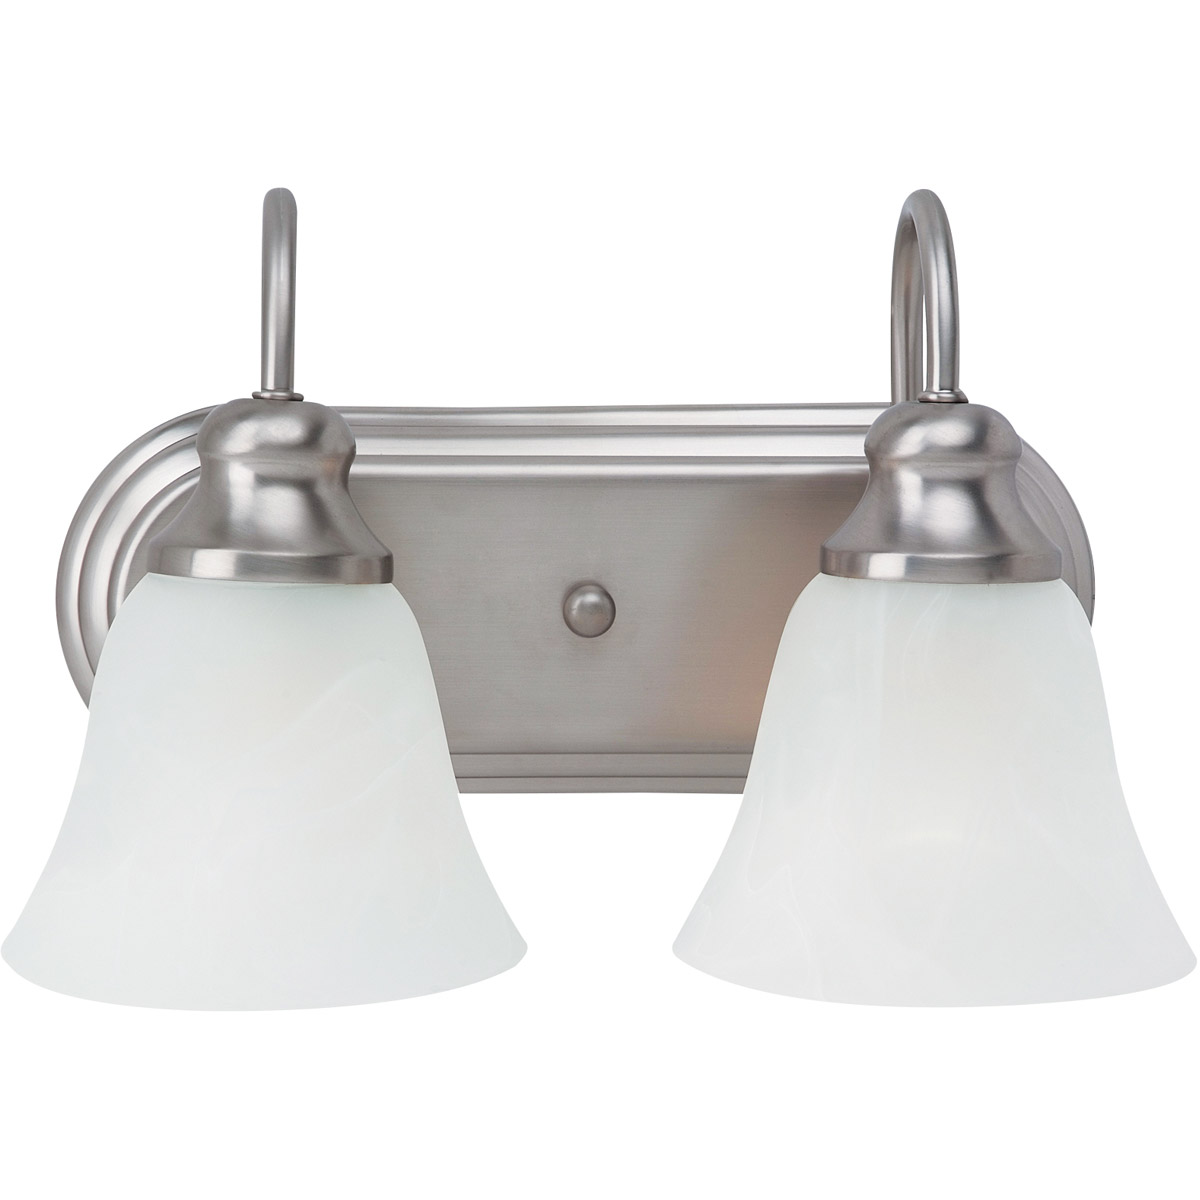 Sea Gull Lighting Windgate 2 Light Bath Vanity in Brushed Nickel 44940-962